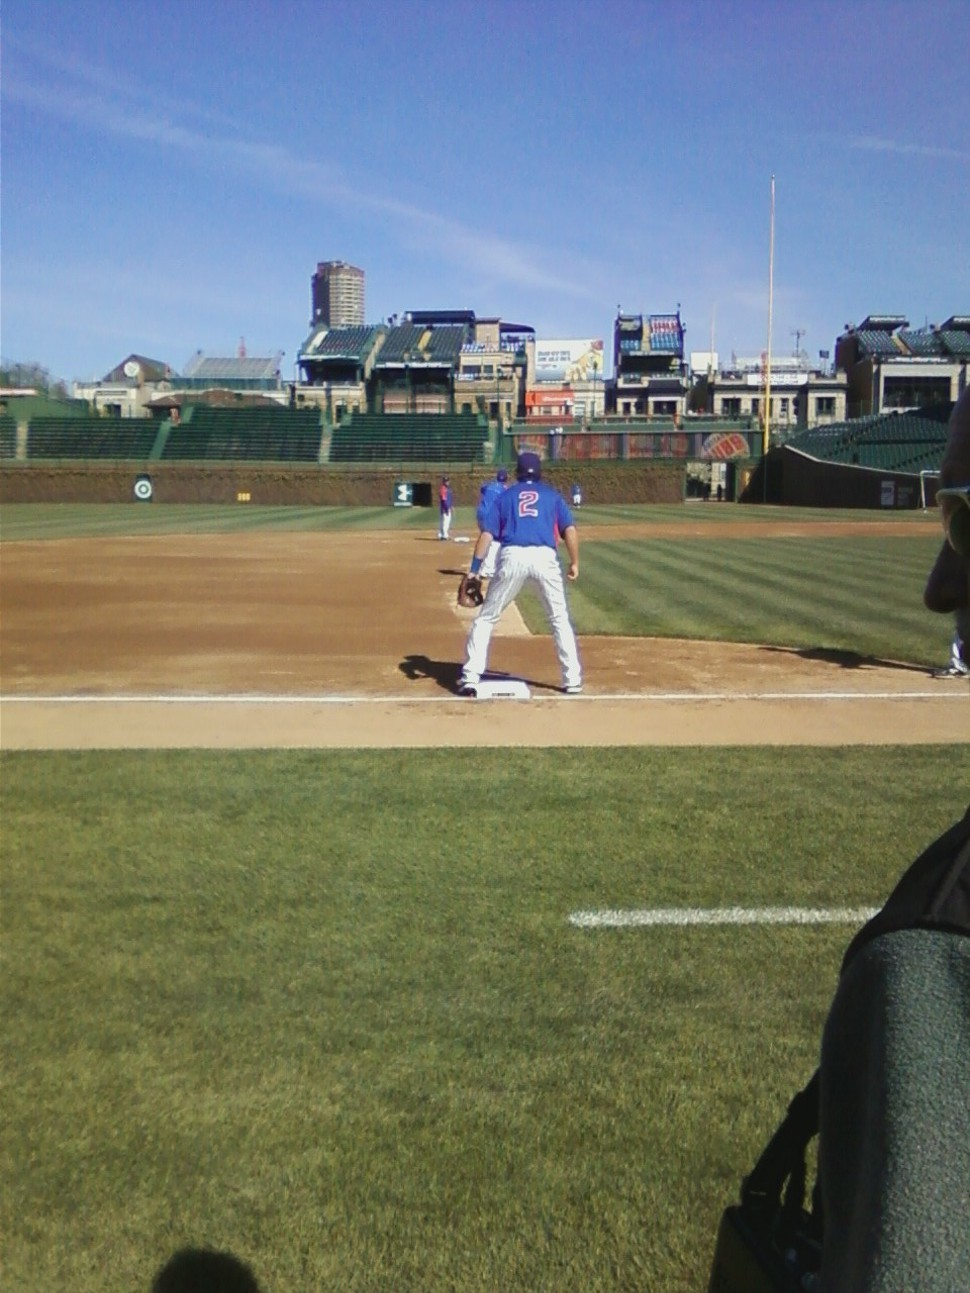 The Cubs third baseman Ian Stewart prepares for the throw from David DeJesus in right as part of infield practice Wednesday.